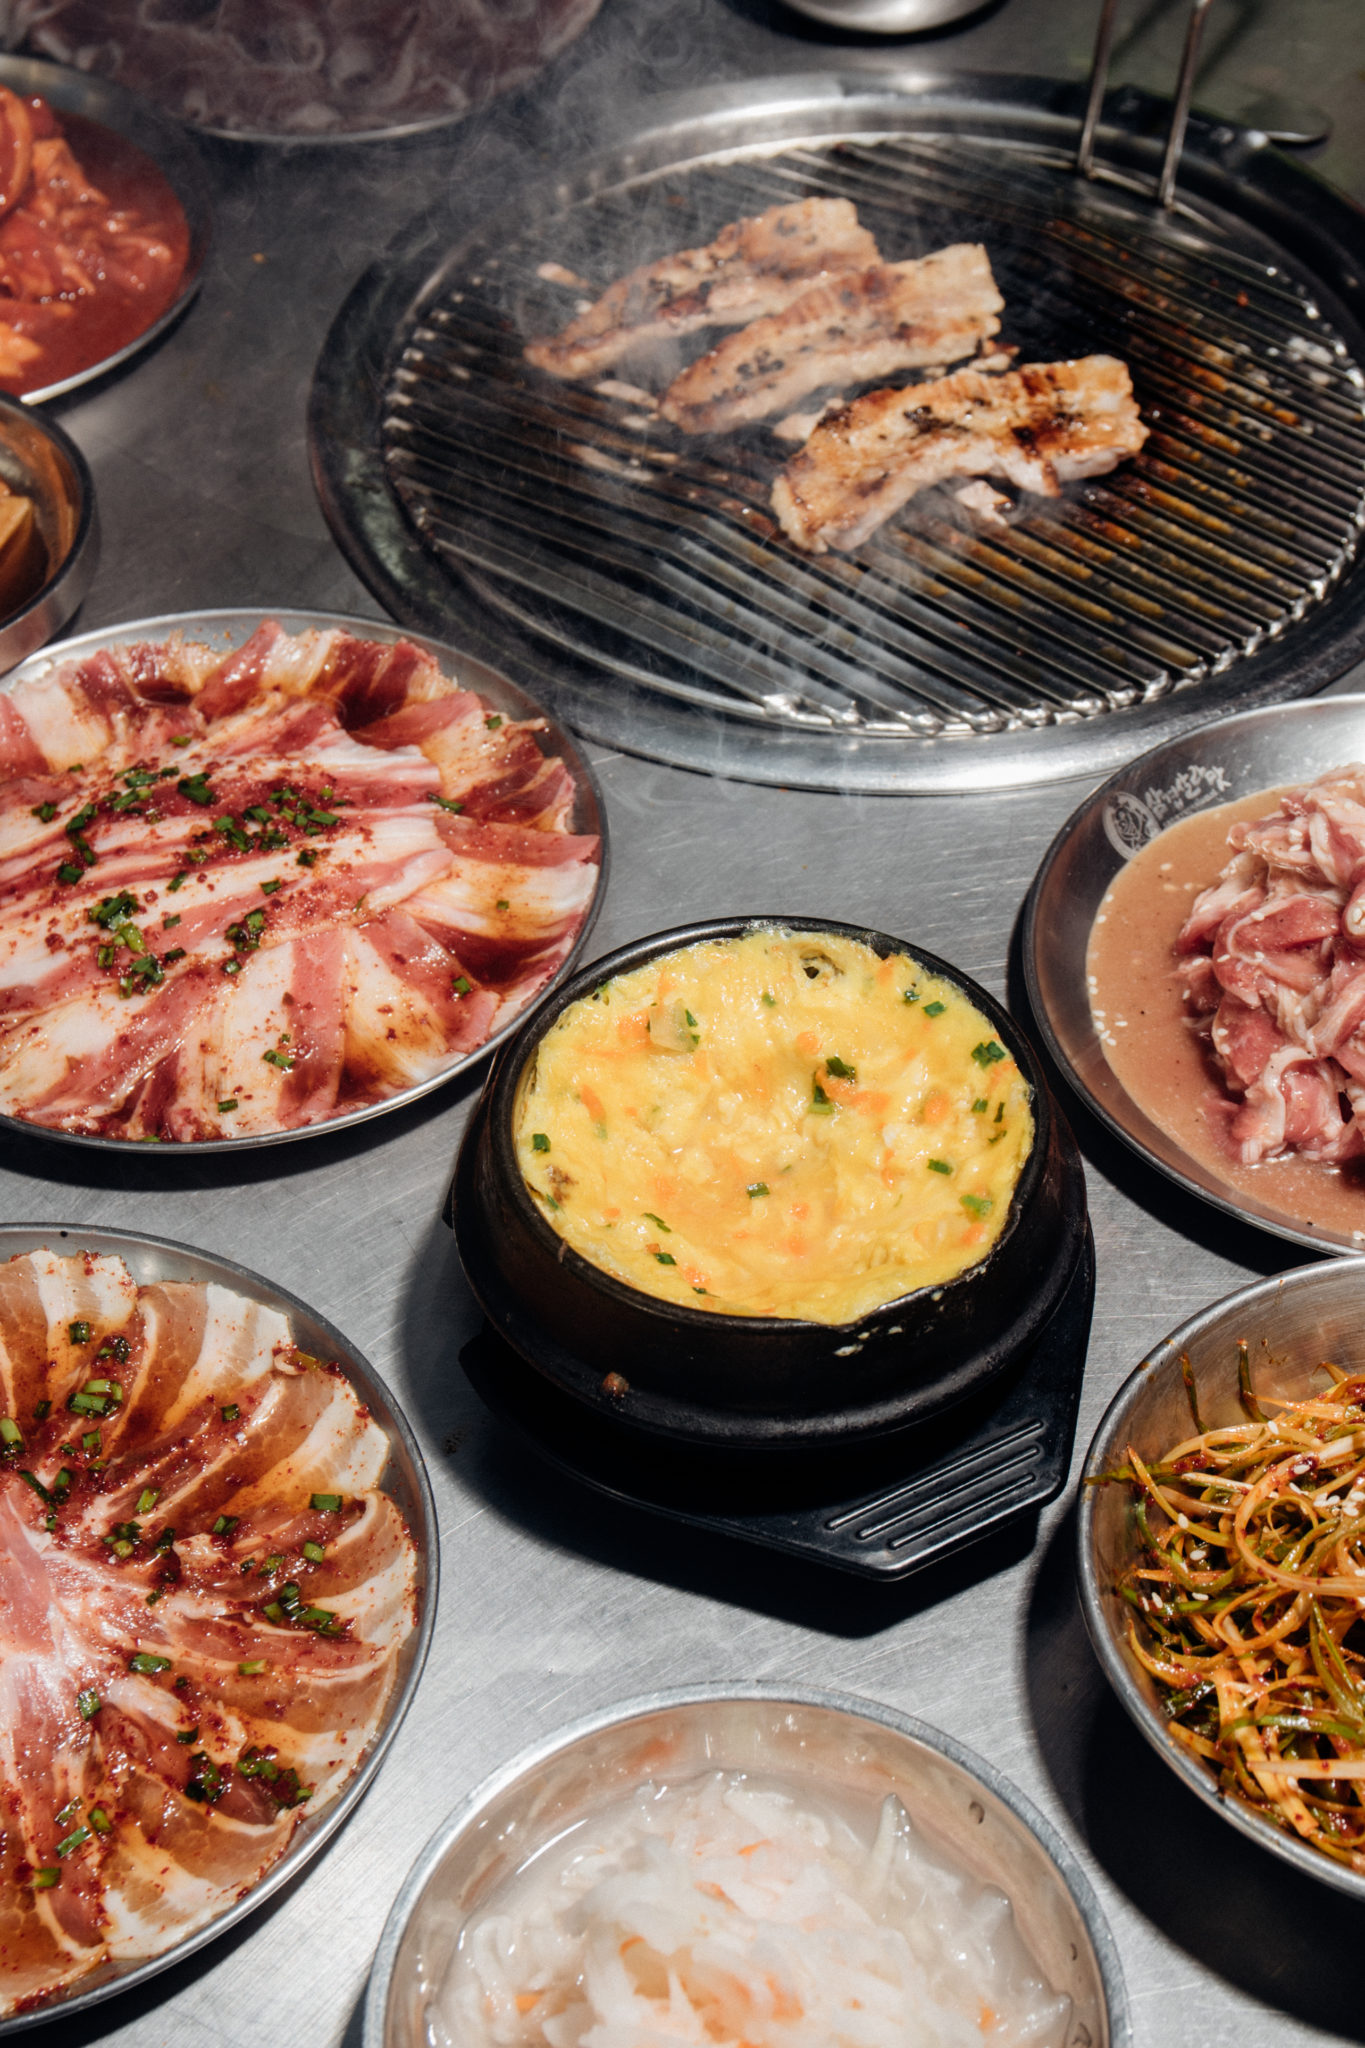 One of the pioneers of unlimited Korean barbecue, Samgyupsalamat has 20 company-owned branches around the metro